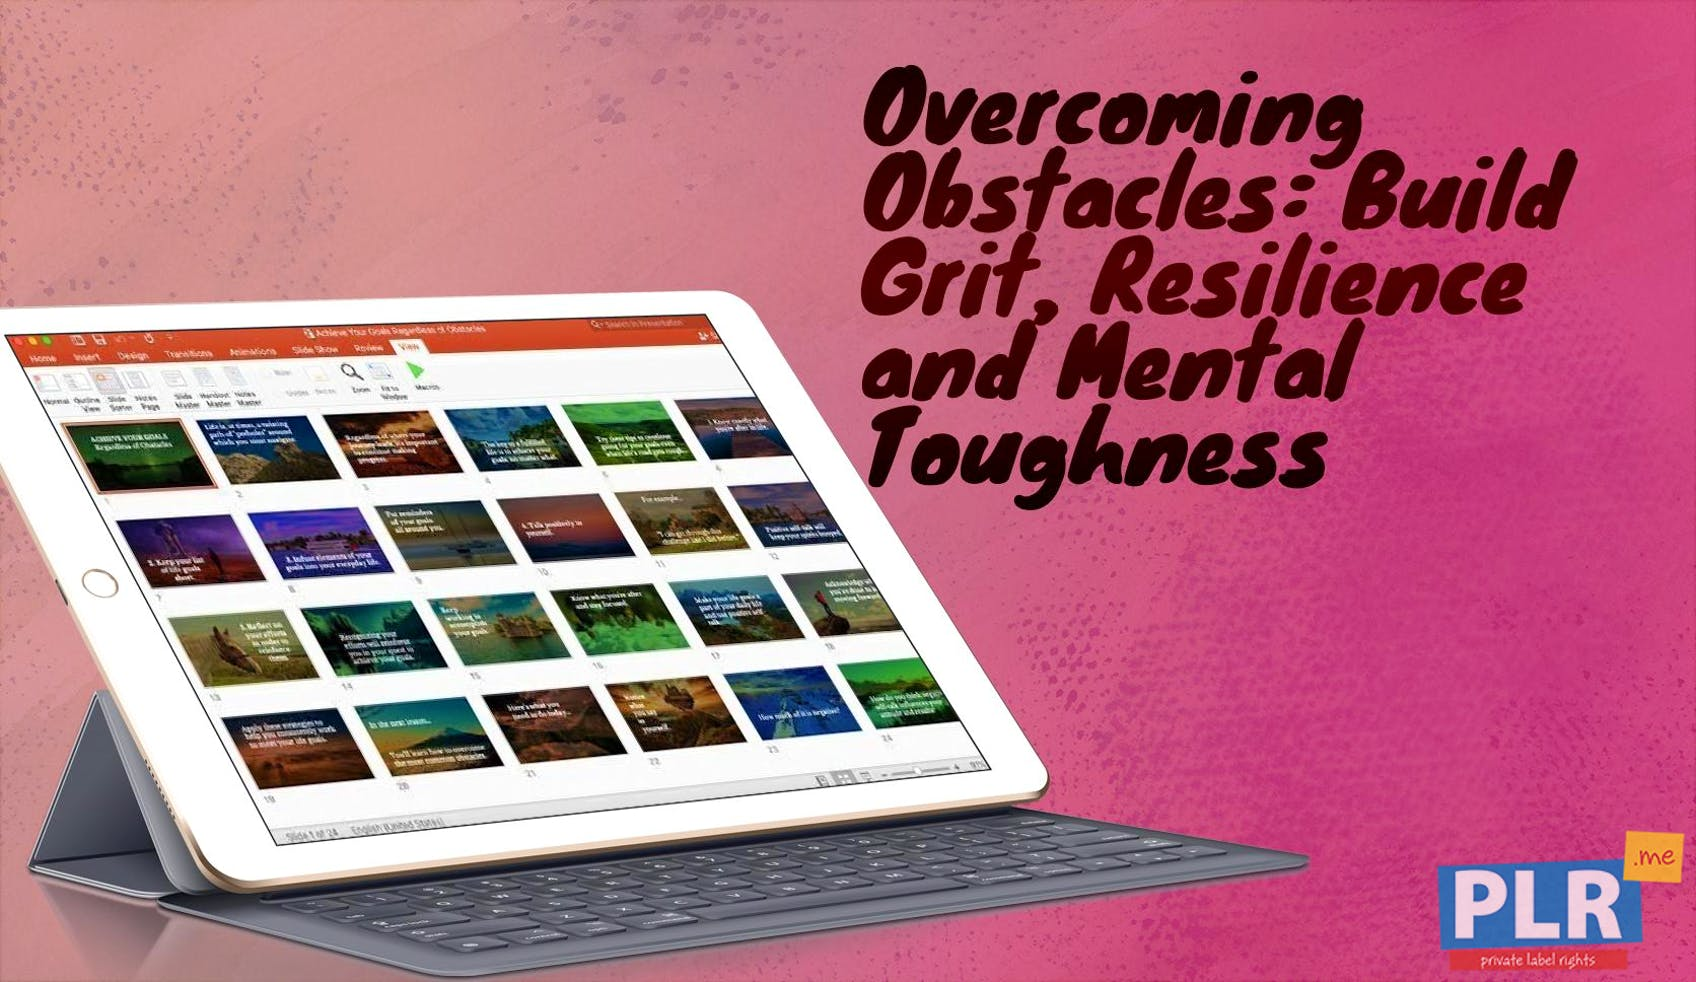 Overcoming Obstacles: Build Grit, Resilience And Mental Toughness - Presentations